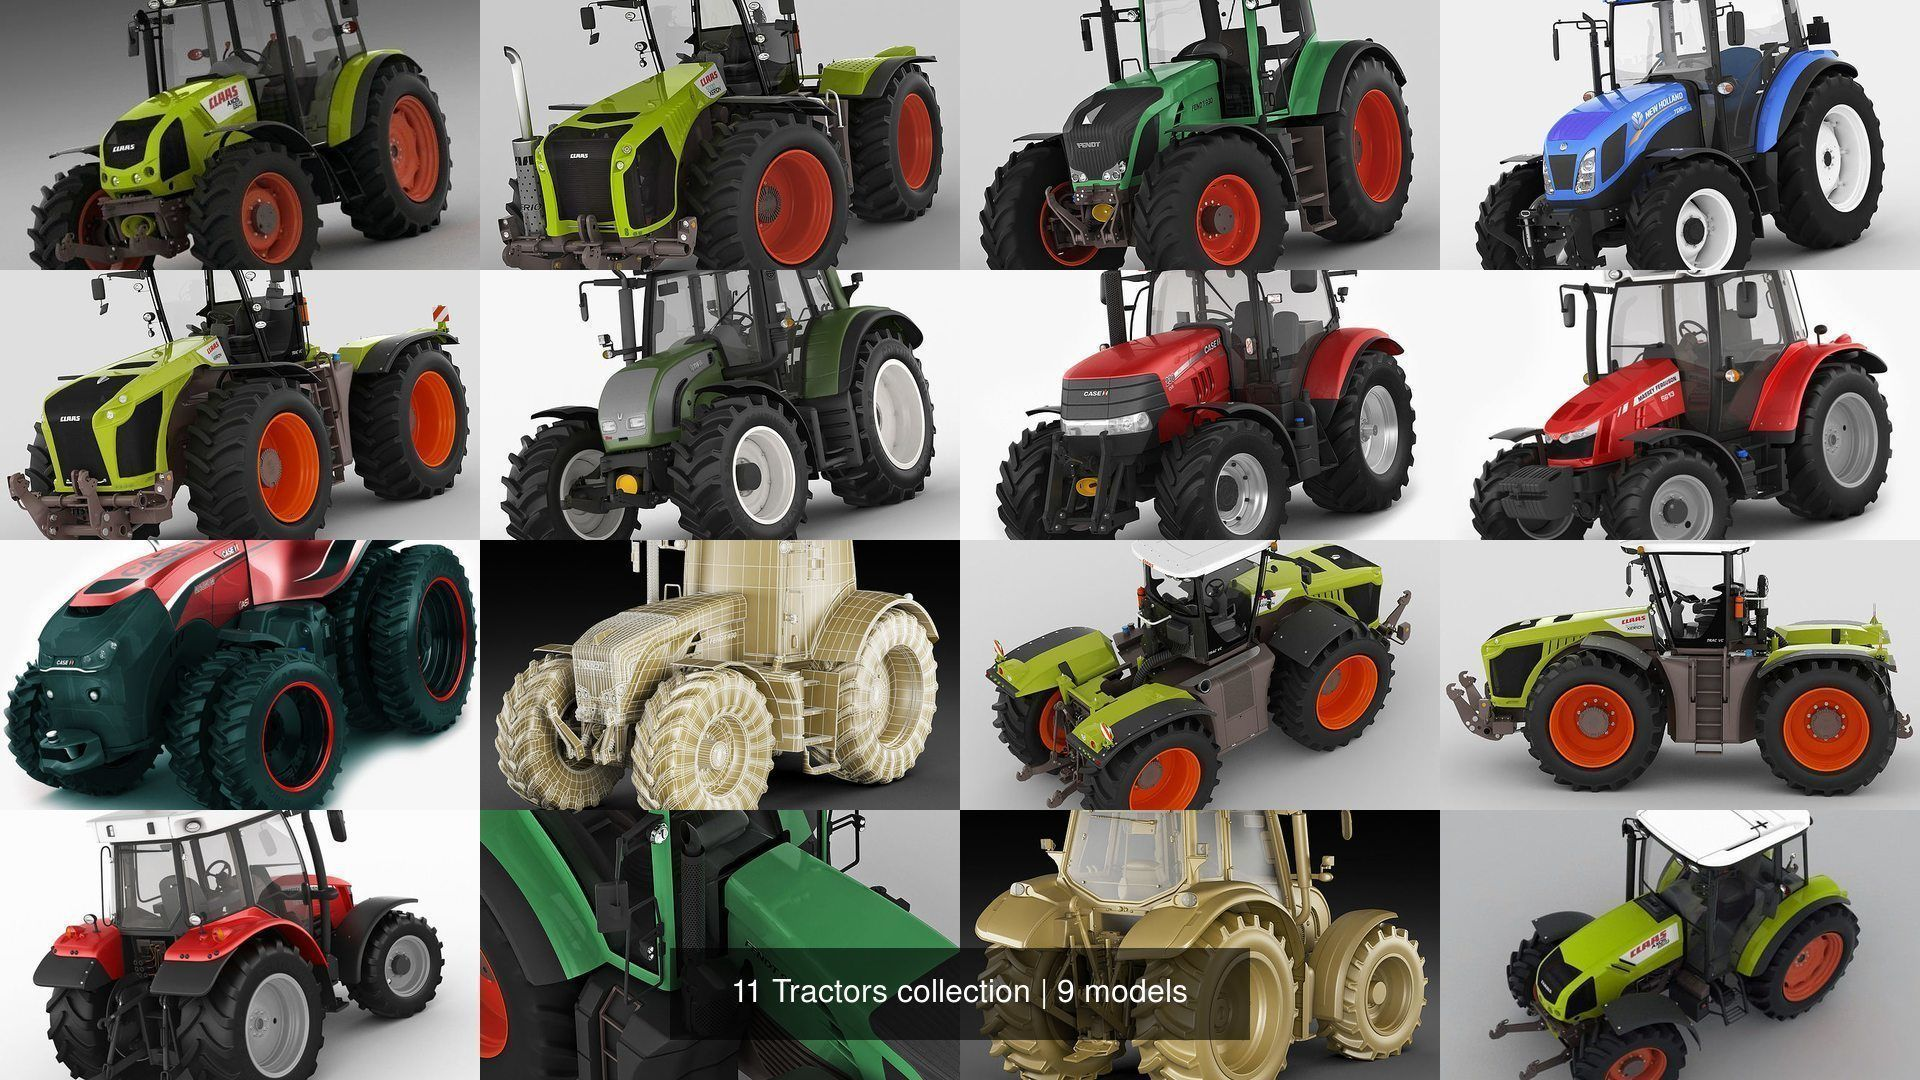 11 Tractors collection